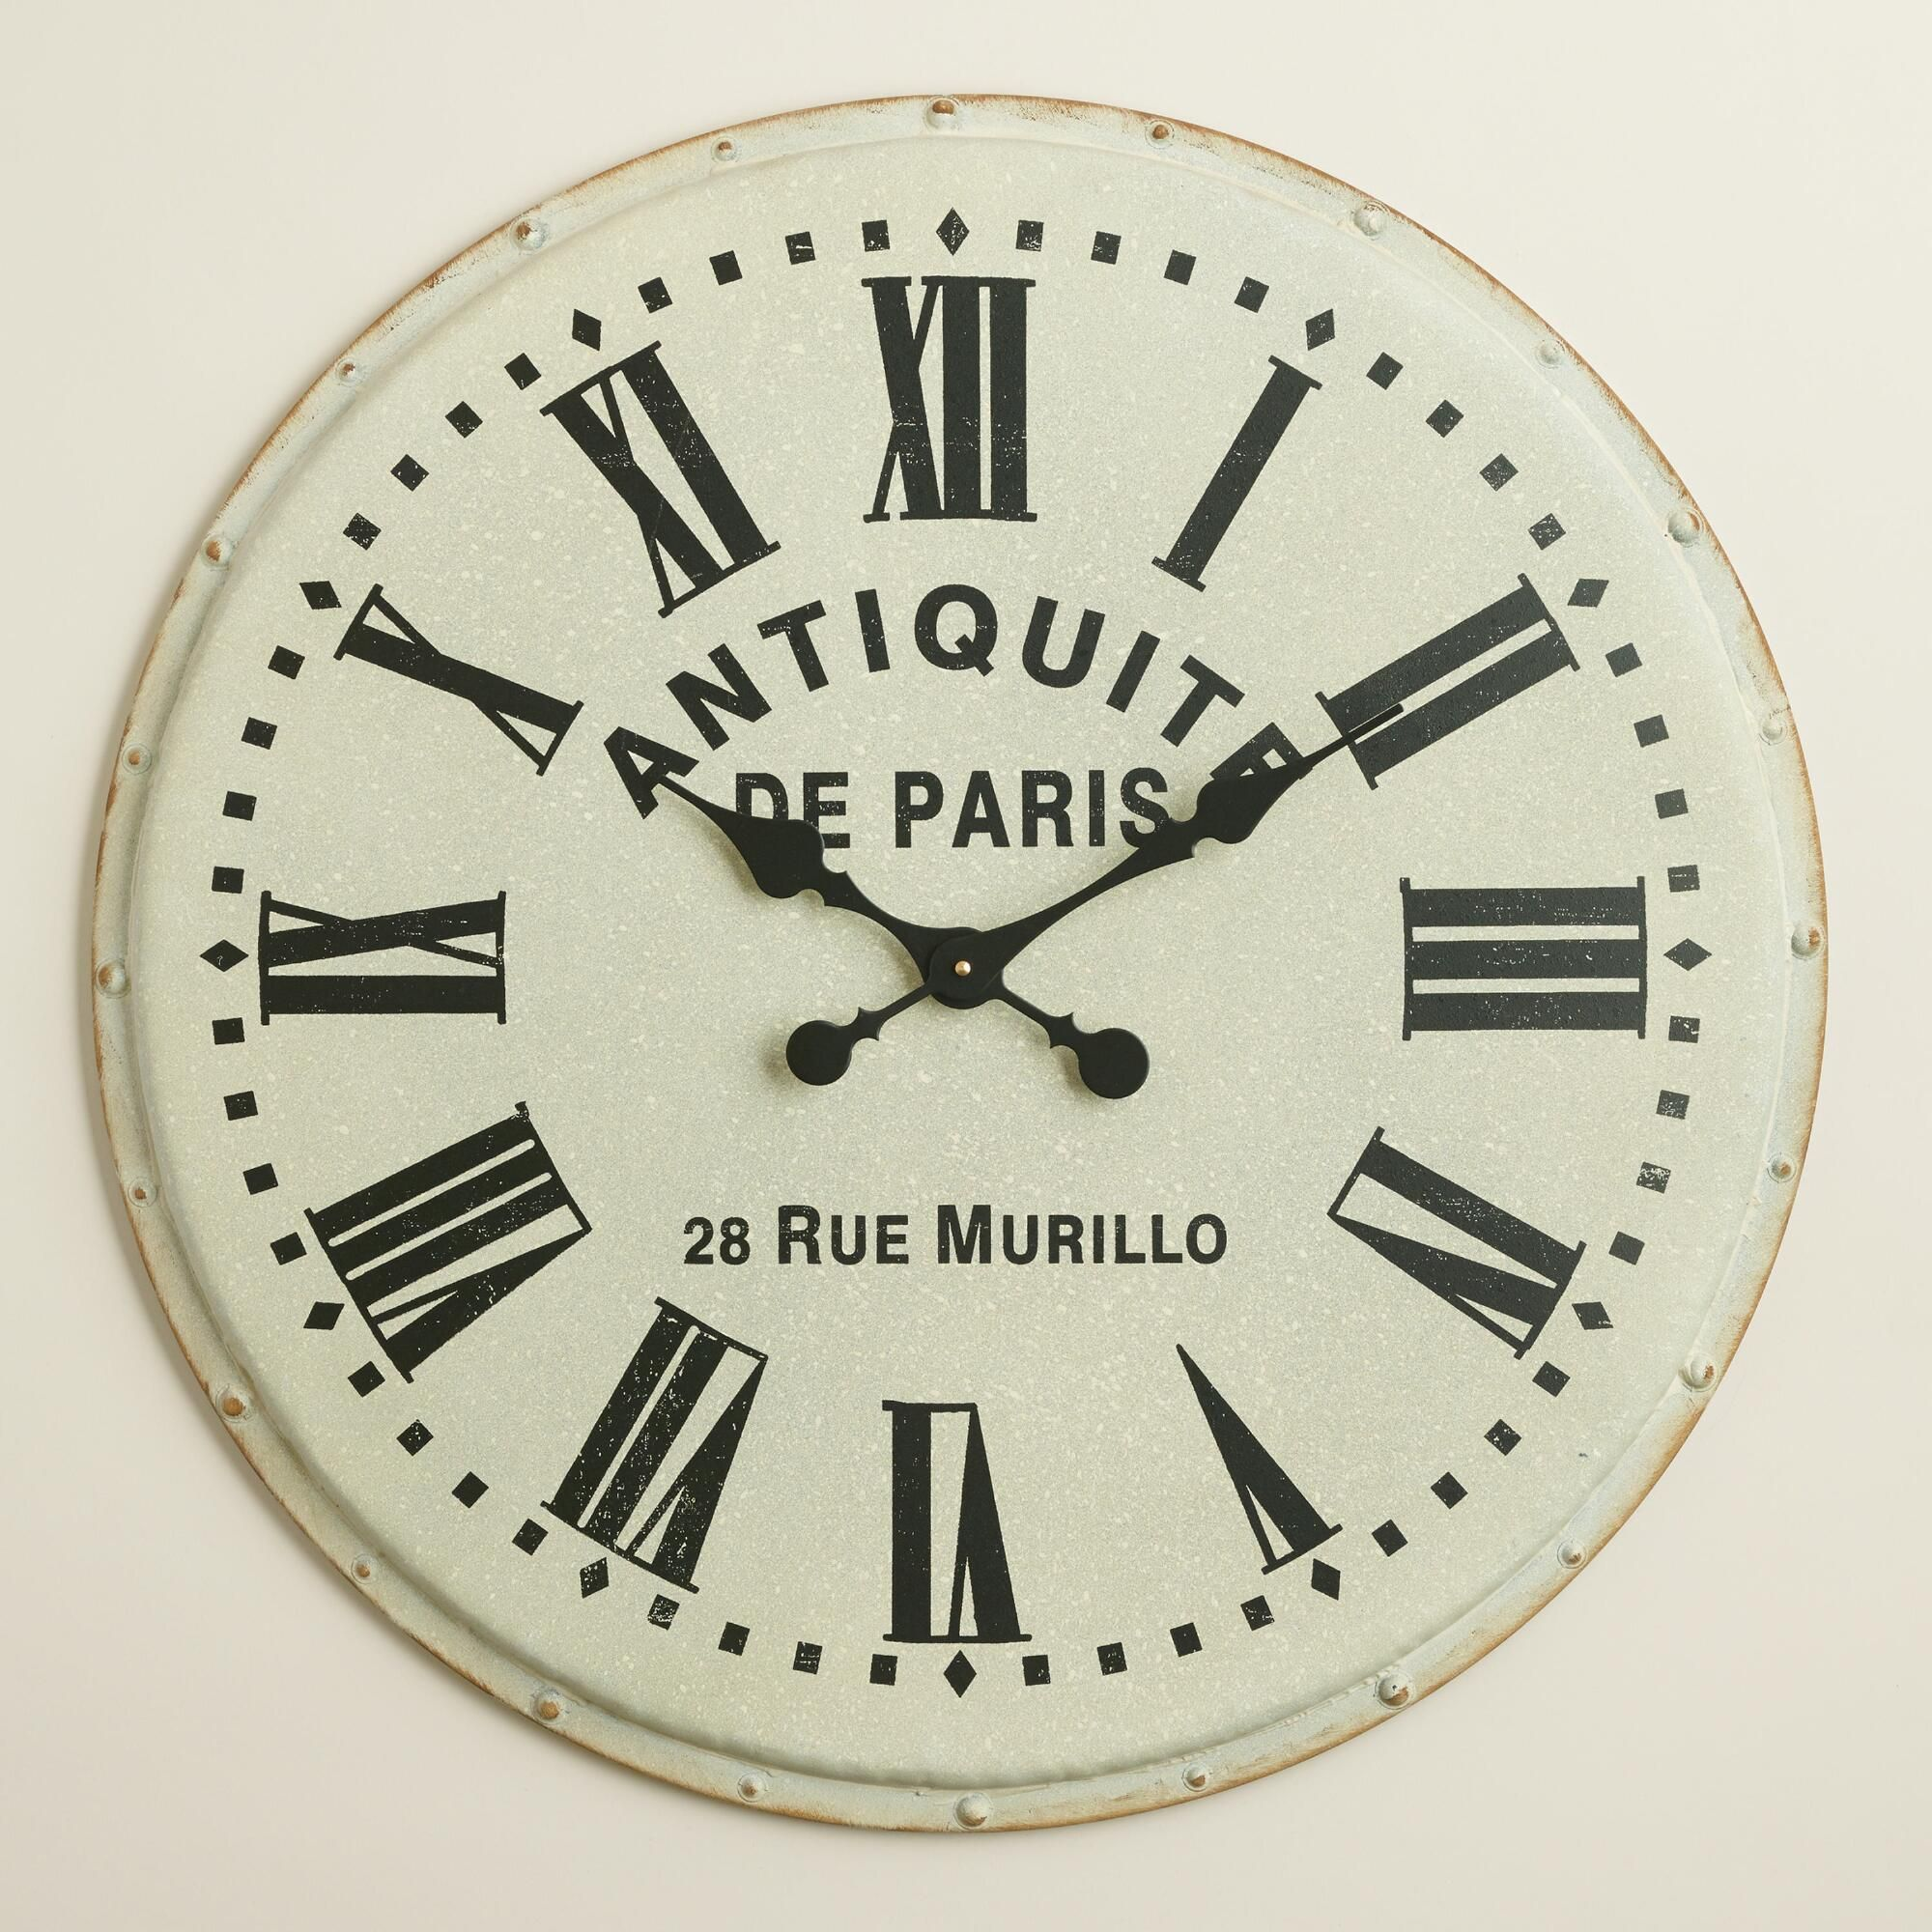 Statement Wall Clocks Our Oversized Clock Makes A Big Vintage Inspired Statement